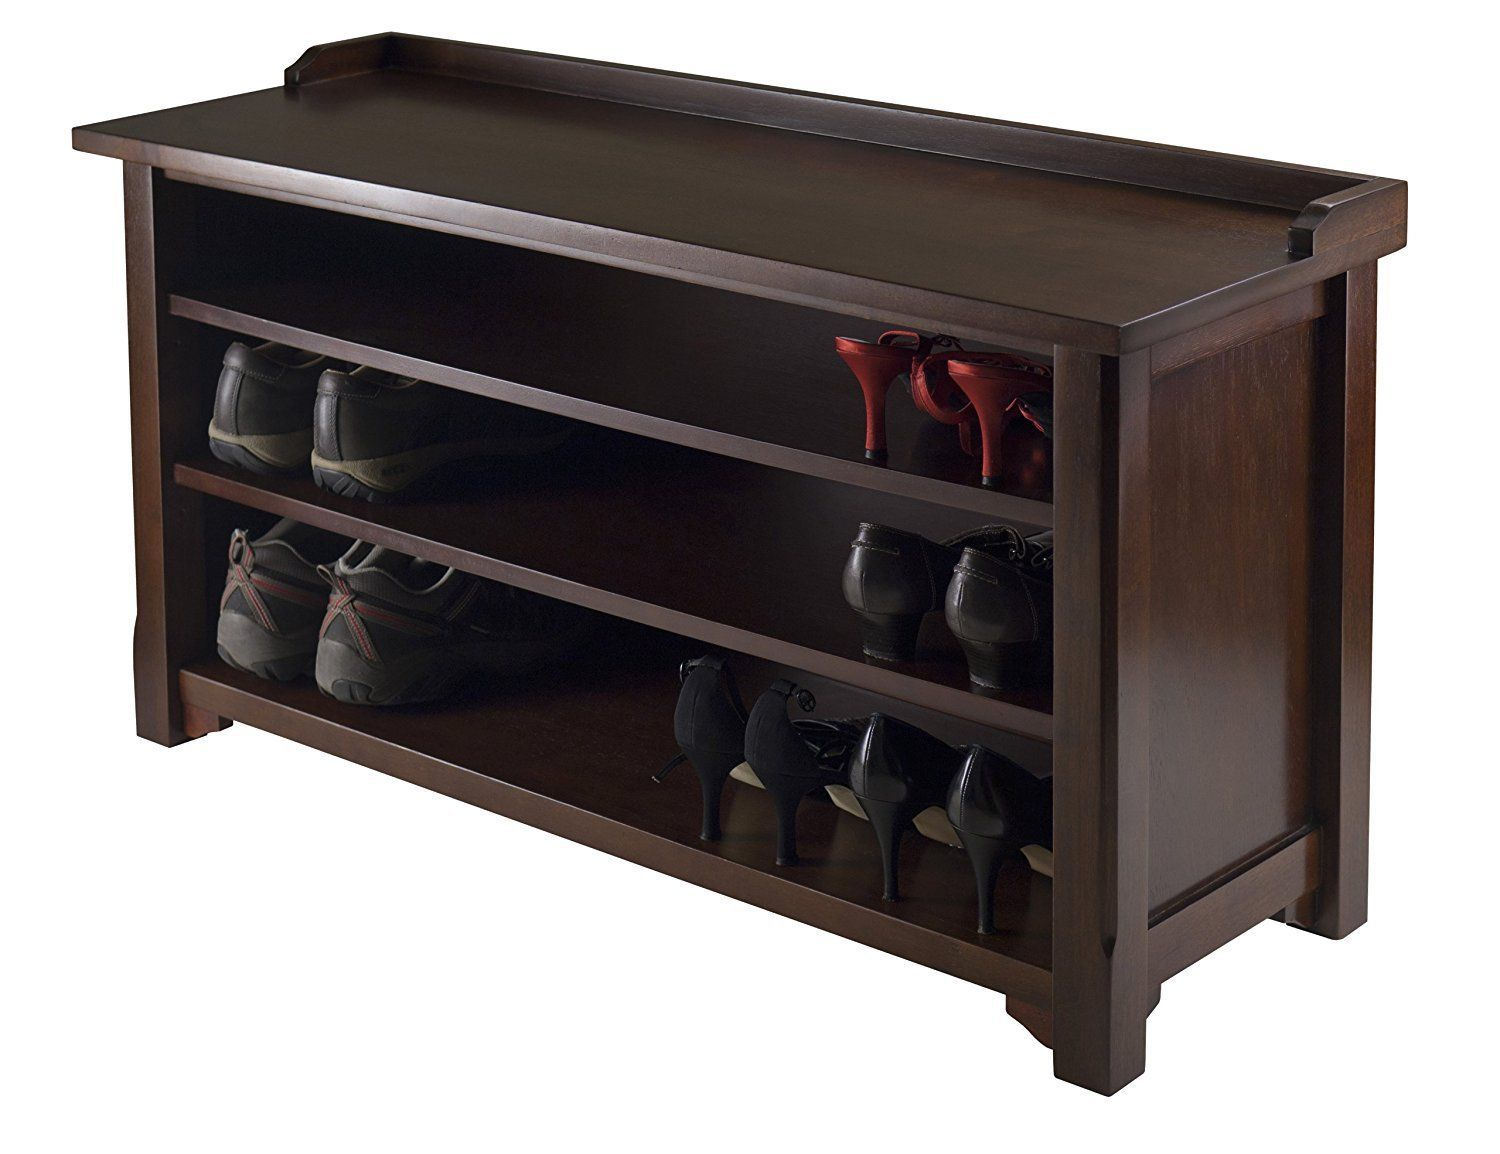 Shoe Organizer Hall Bench Rack Entryway Shelves boots seat antique wood finish - $178.19